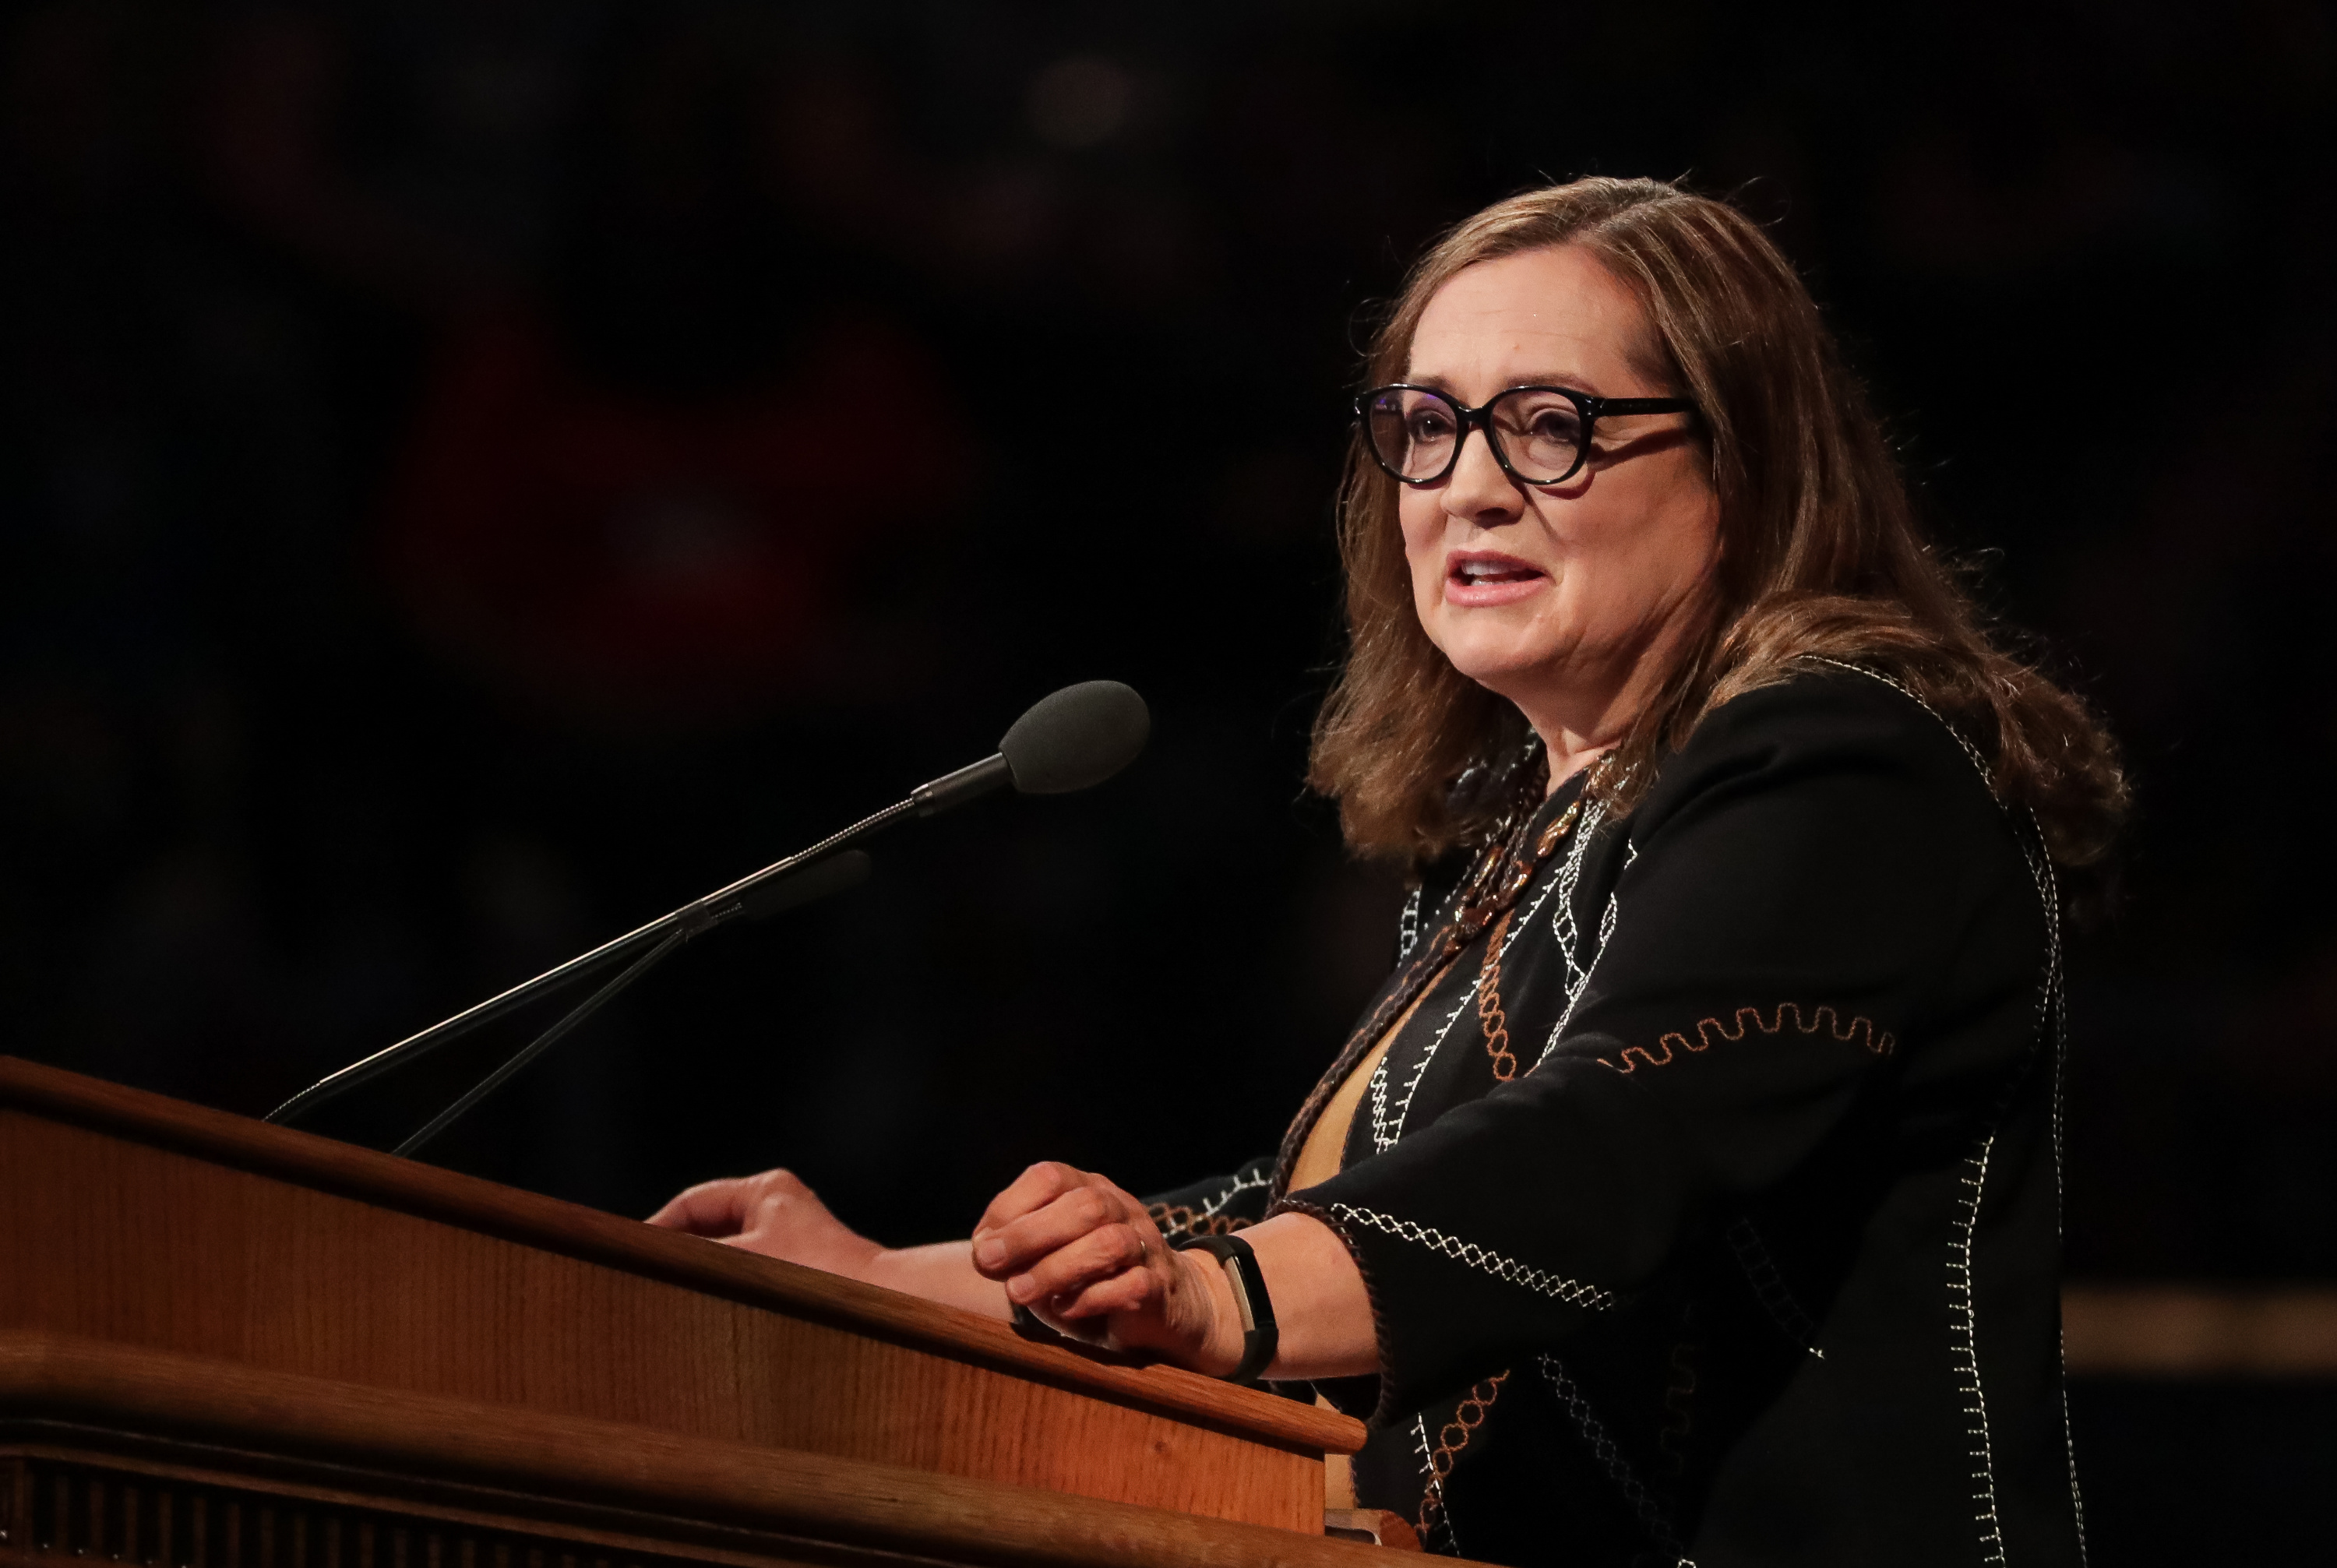 Sister Susan Gong, wife of Elder Gerrit W. Gong, of the Quorum of the Twelve Apostles of the LDS Church, speaks at the BYU Women's Conference at the Marriott Center in Provo on Friday, May 4, 2018.